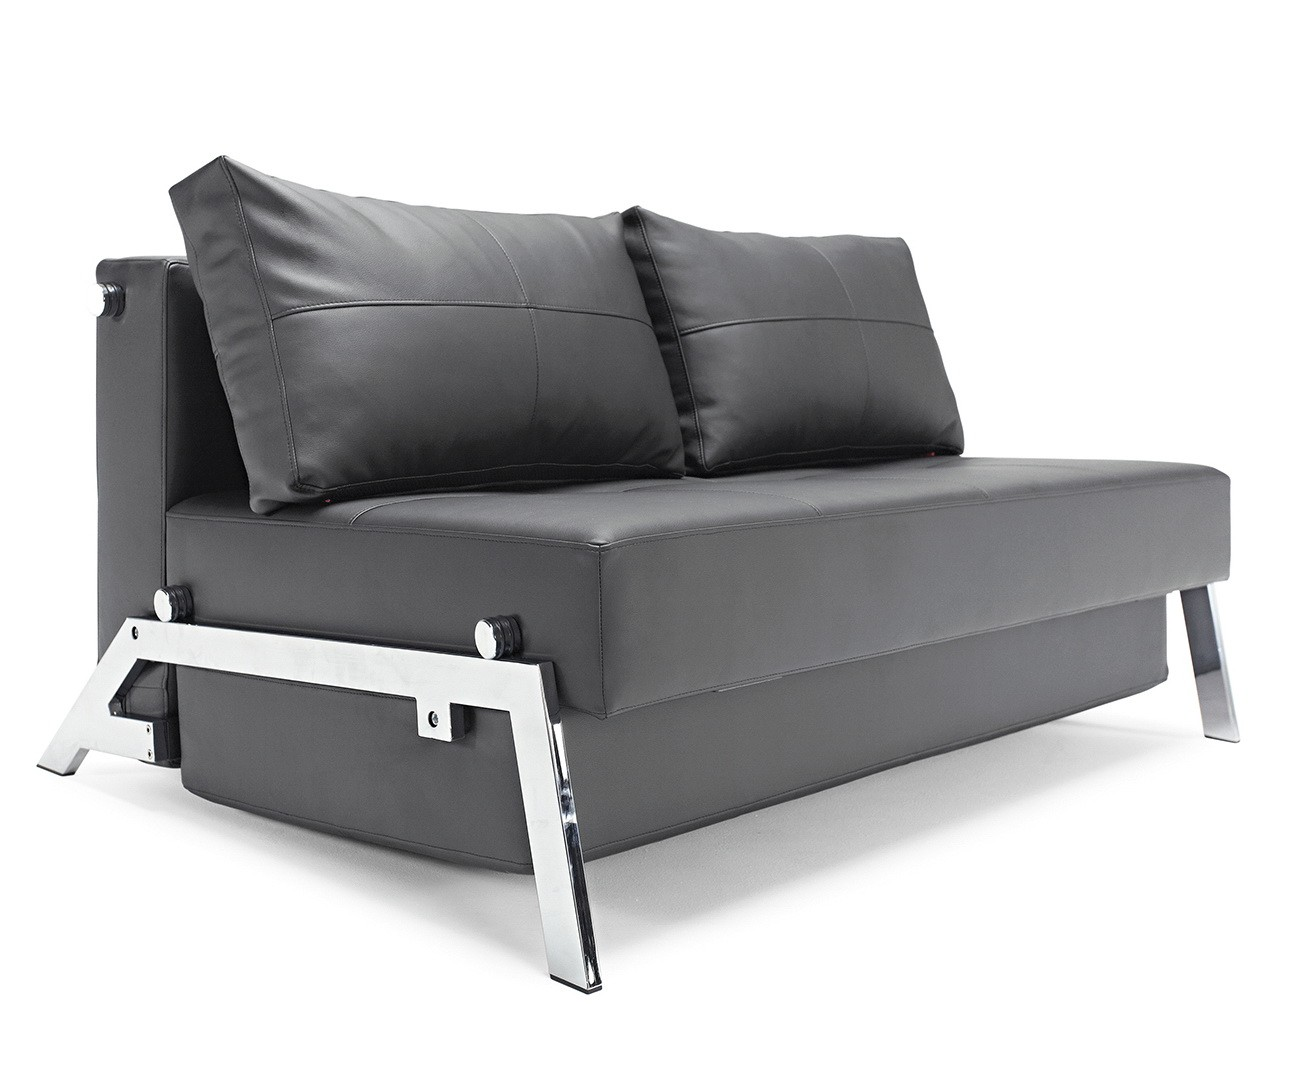 Cubed deluxe sofa bed innovation usa available at nova for Sofa bed usa